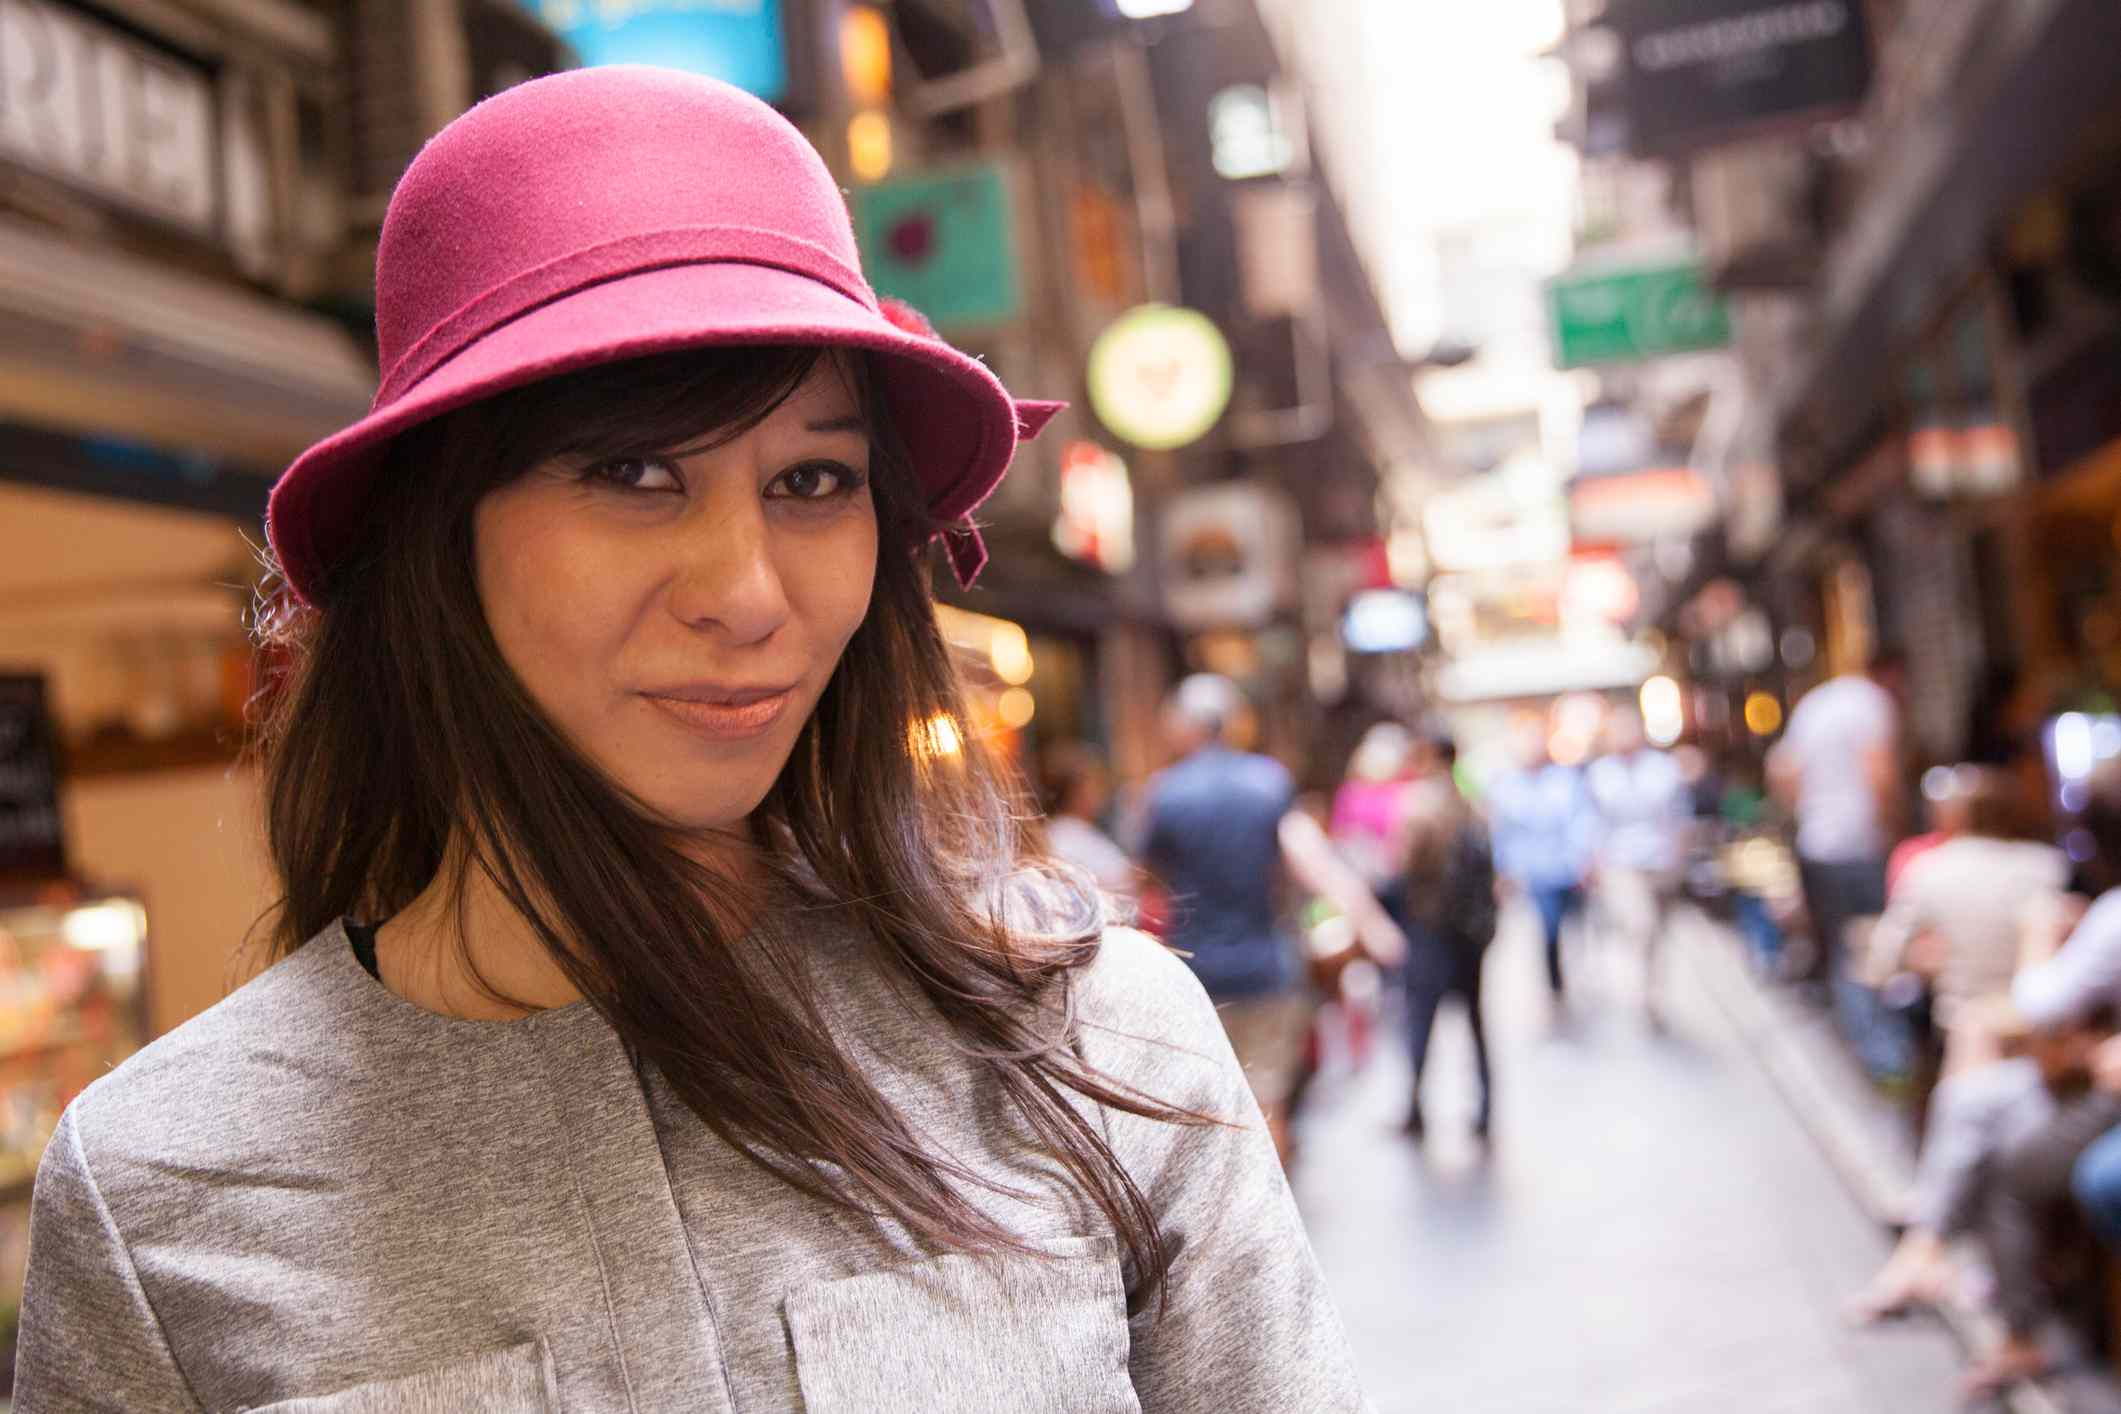 woman in a pink hat on a Melbourne street